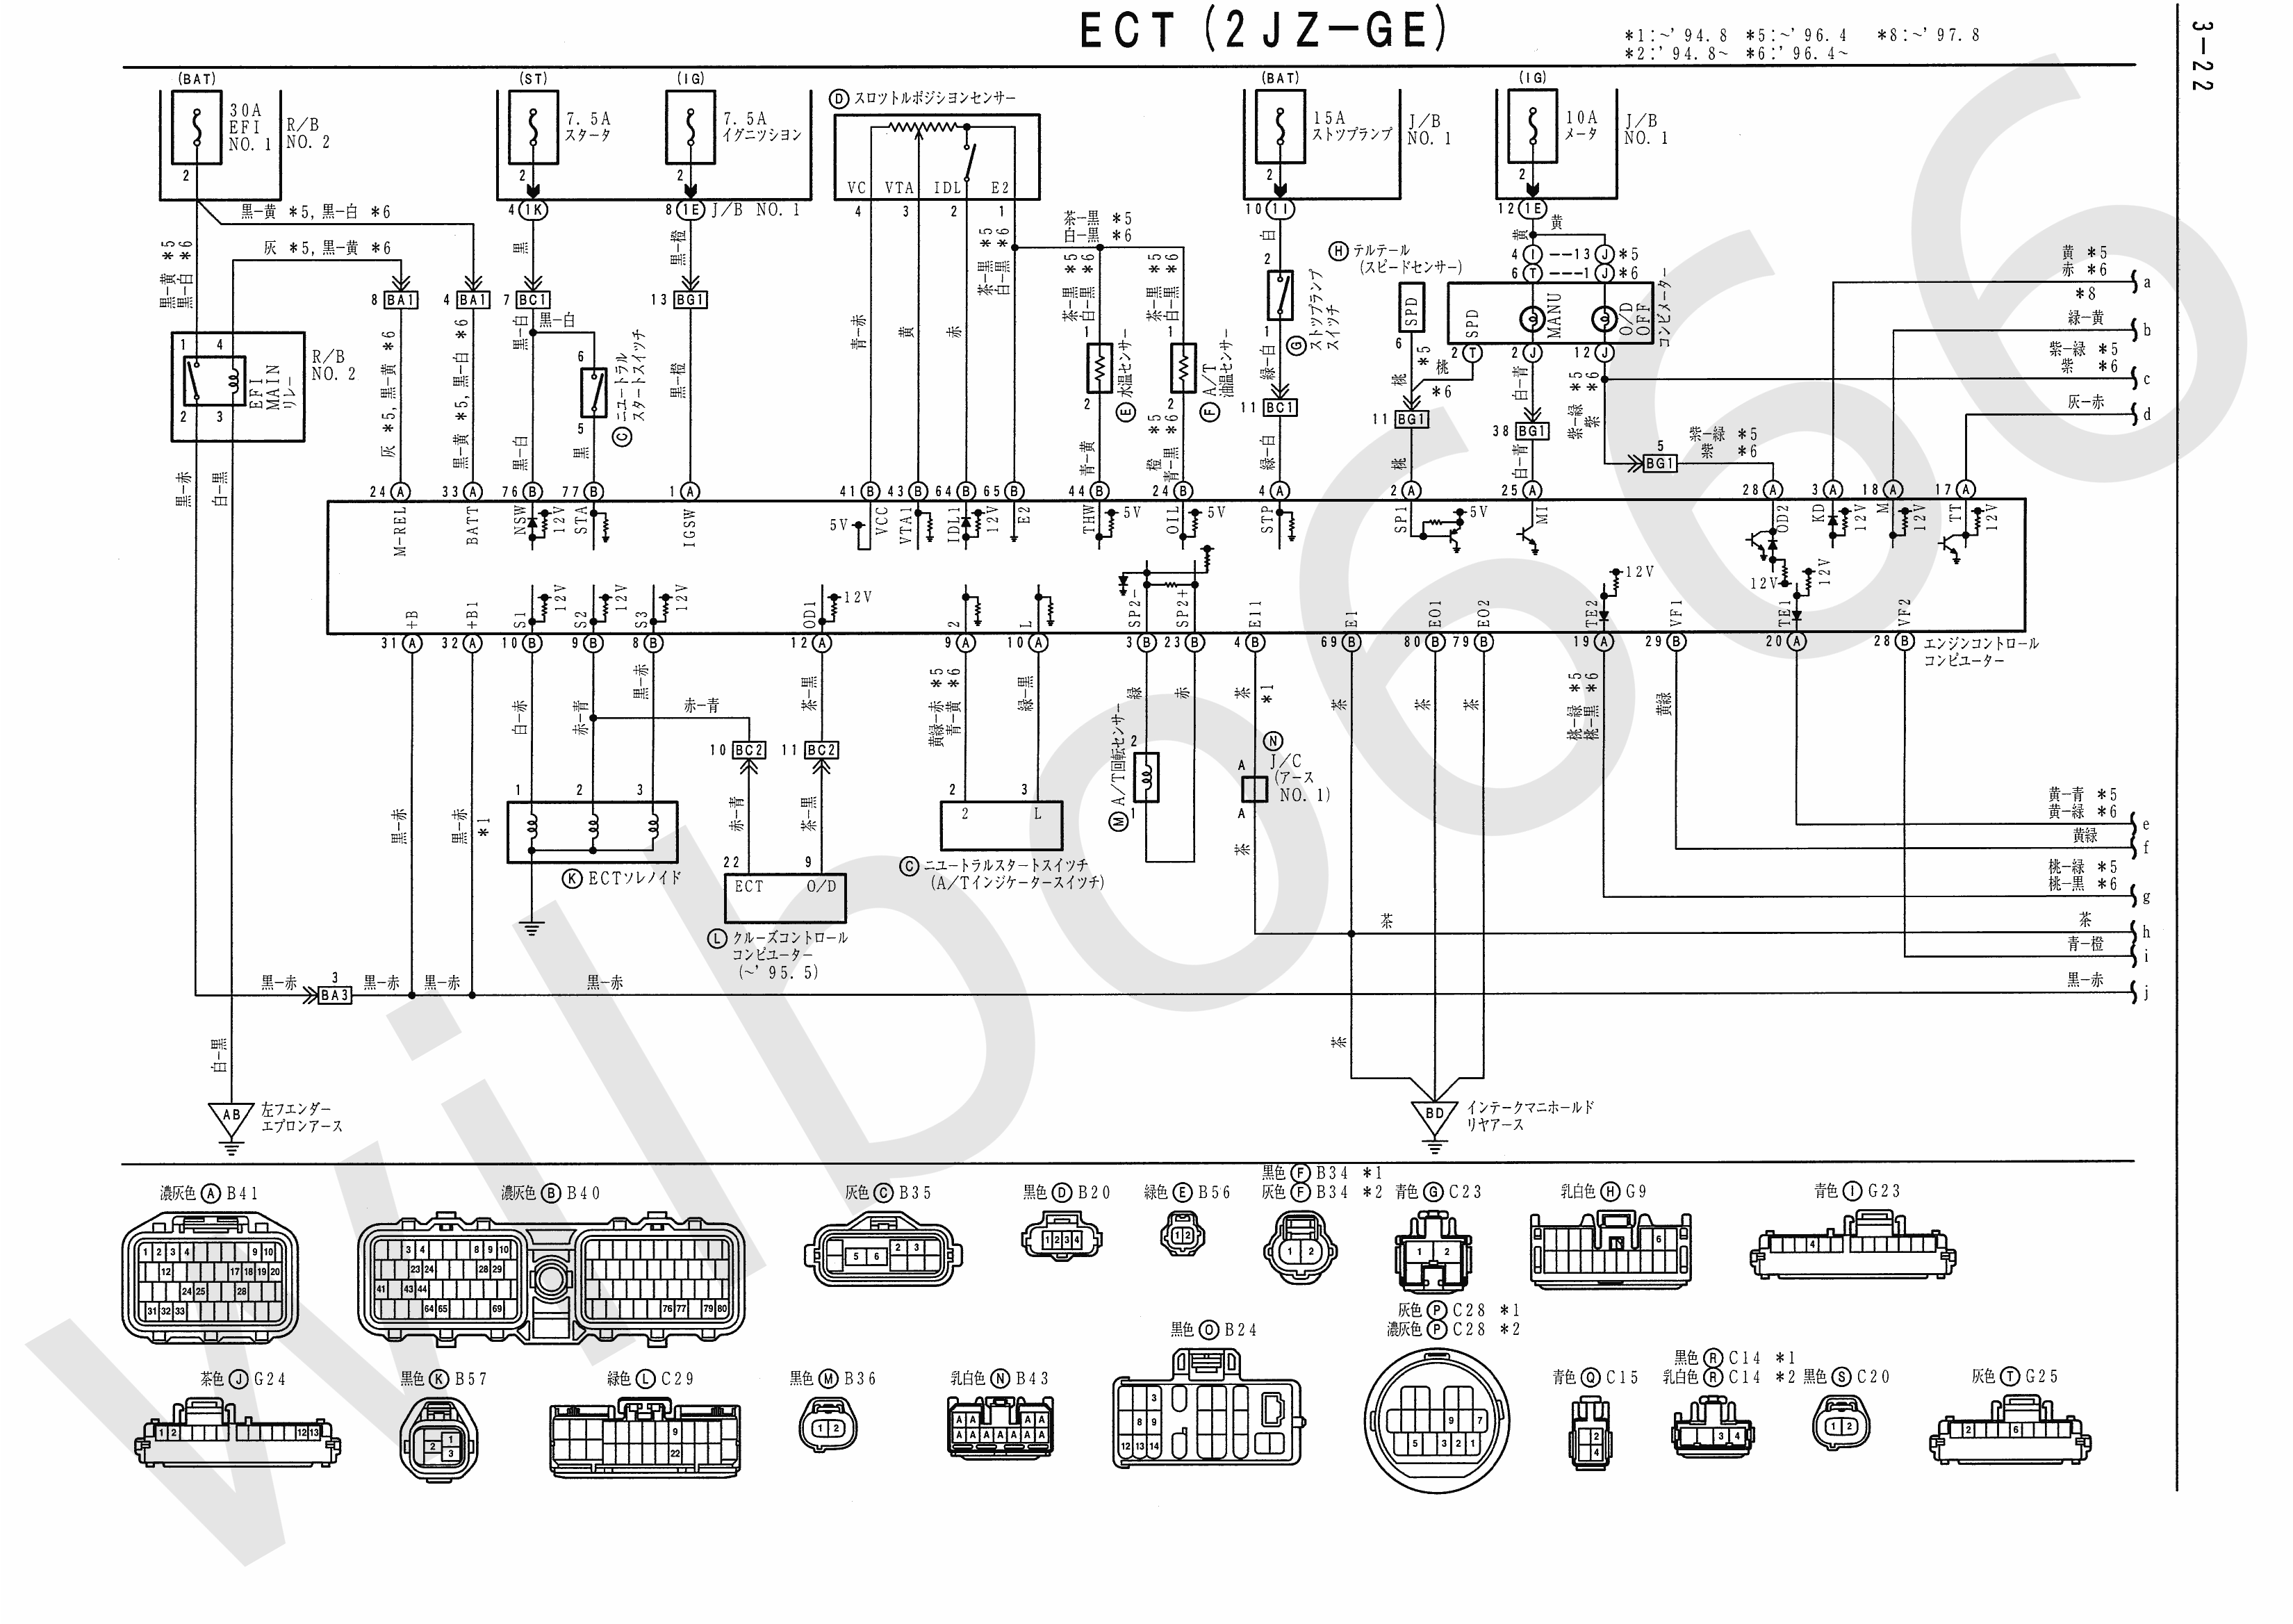 [DIAGRAM_38ZD]  A1D260 1991 Toyota Mr2 Fuse Box Wiring Diagram | Wiring Library | 94 Supra Fuse Box Diagram |  | Wiring Library